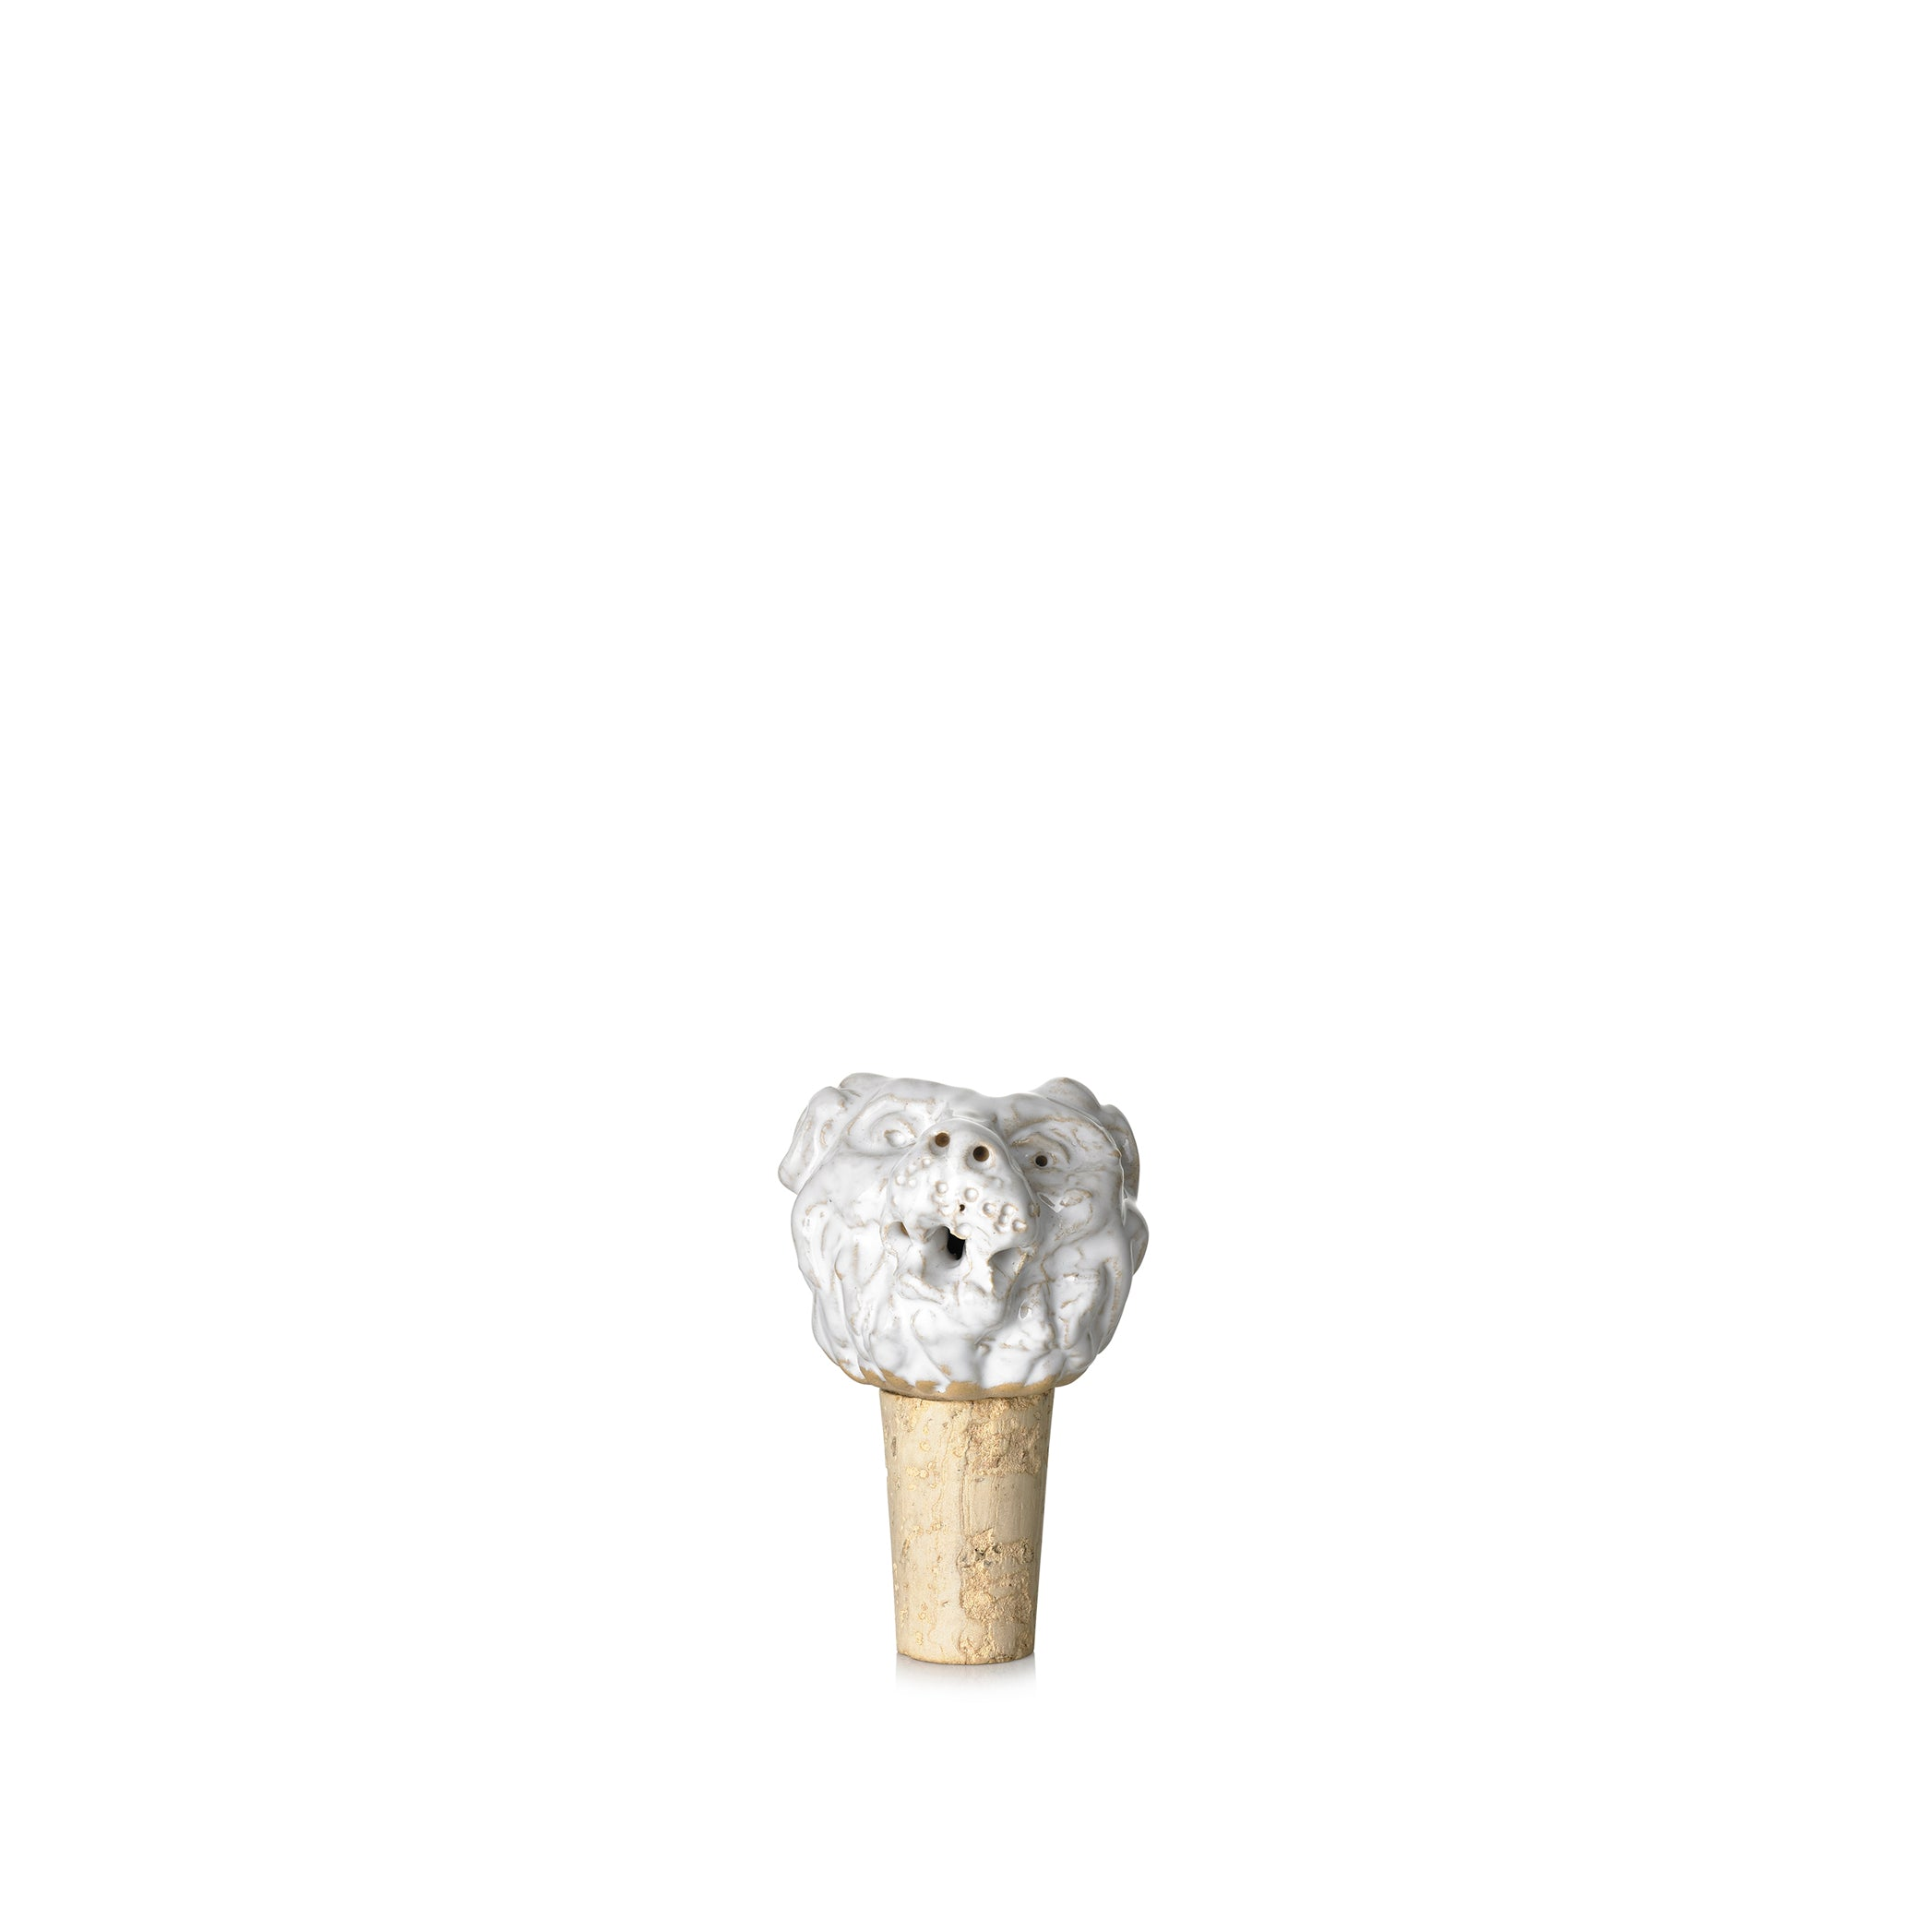 Leonis 'Lion' Ceramic Bottle Stopper